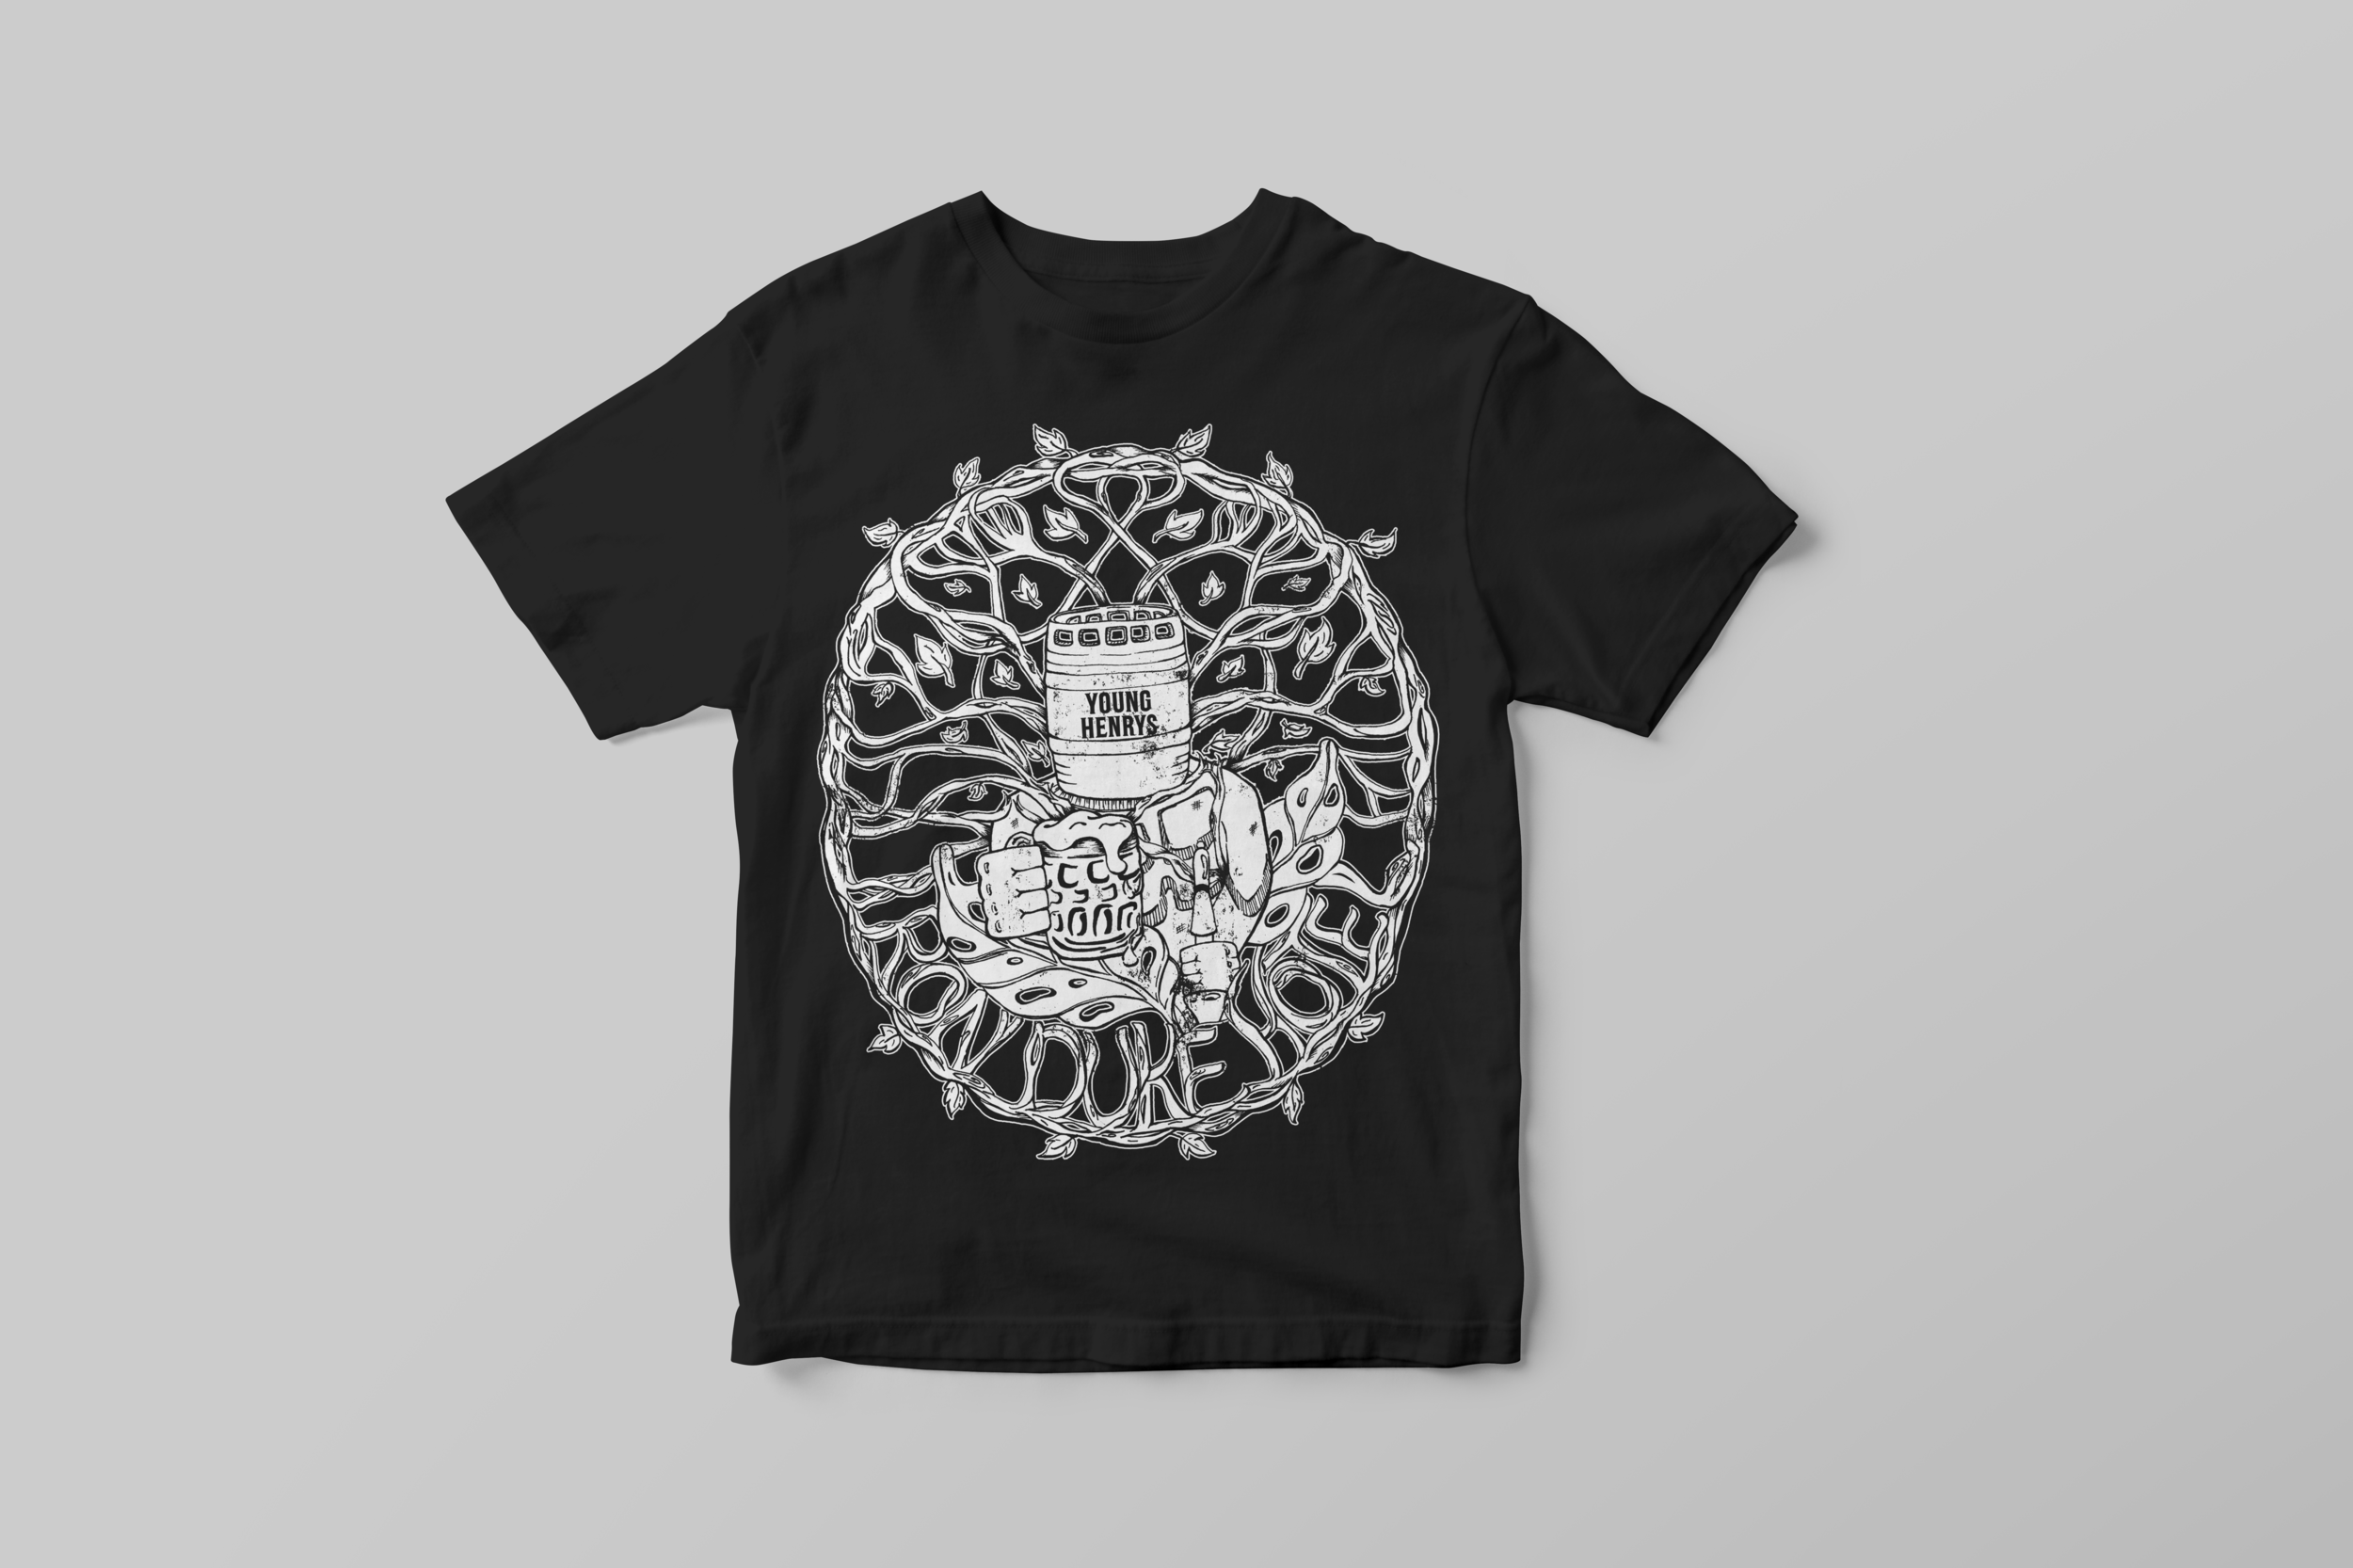 T-Shirt artwork in collaboration with Young Henrys Brewery